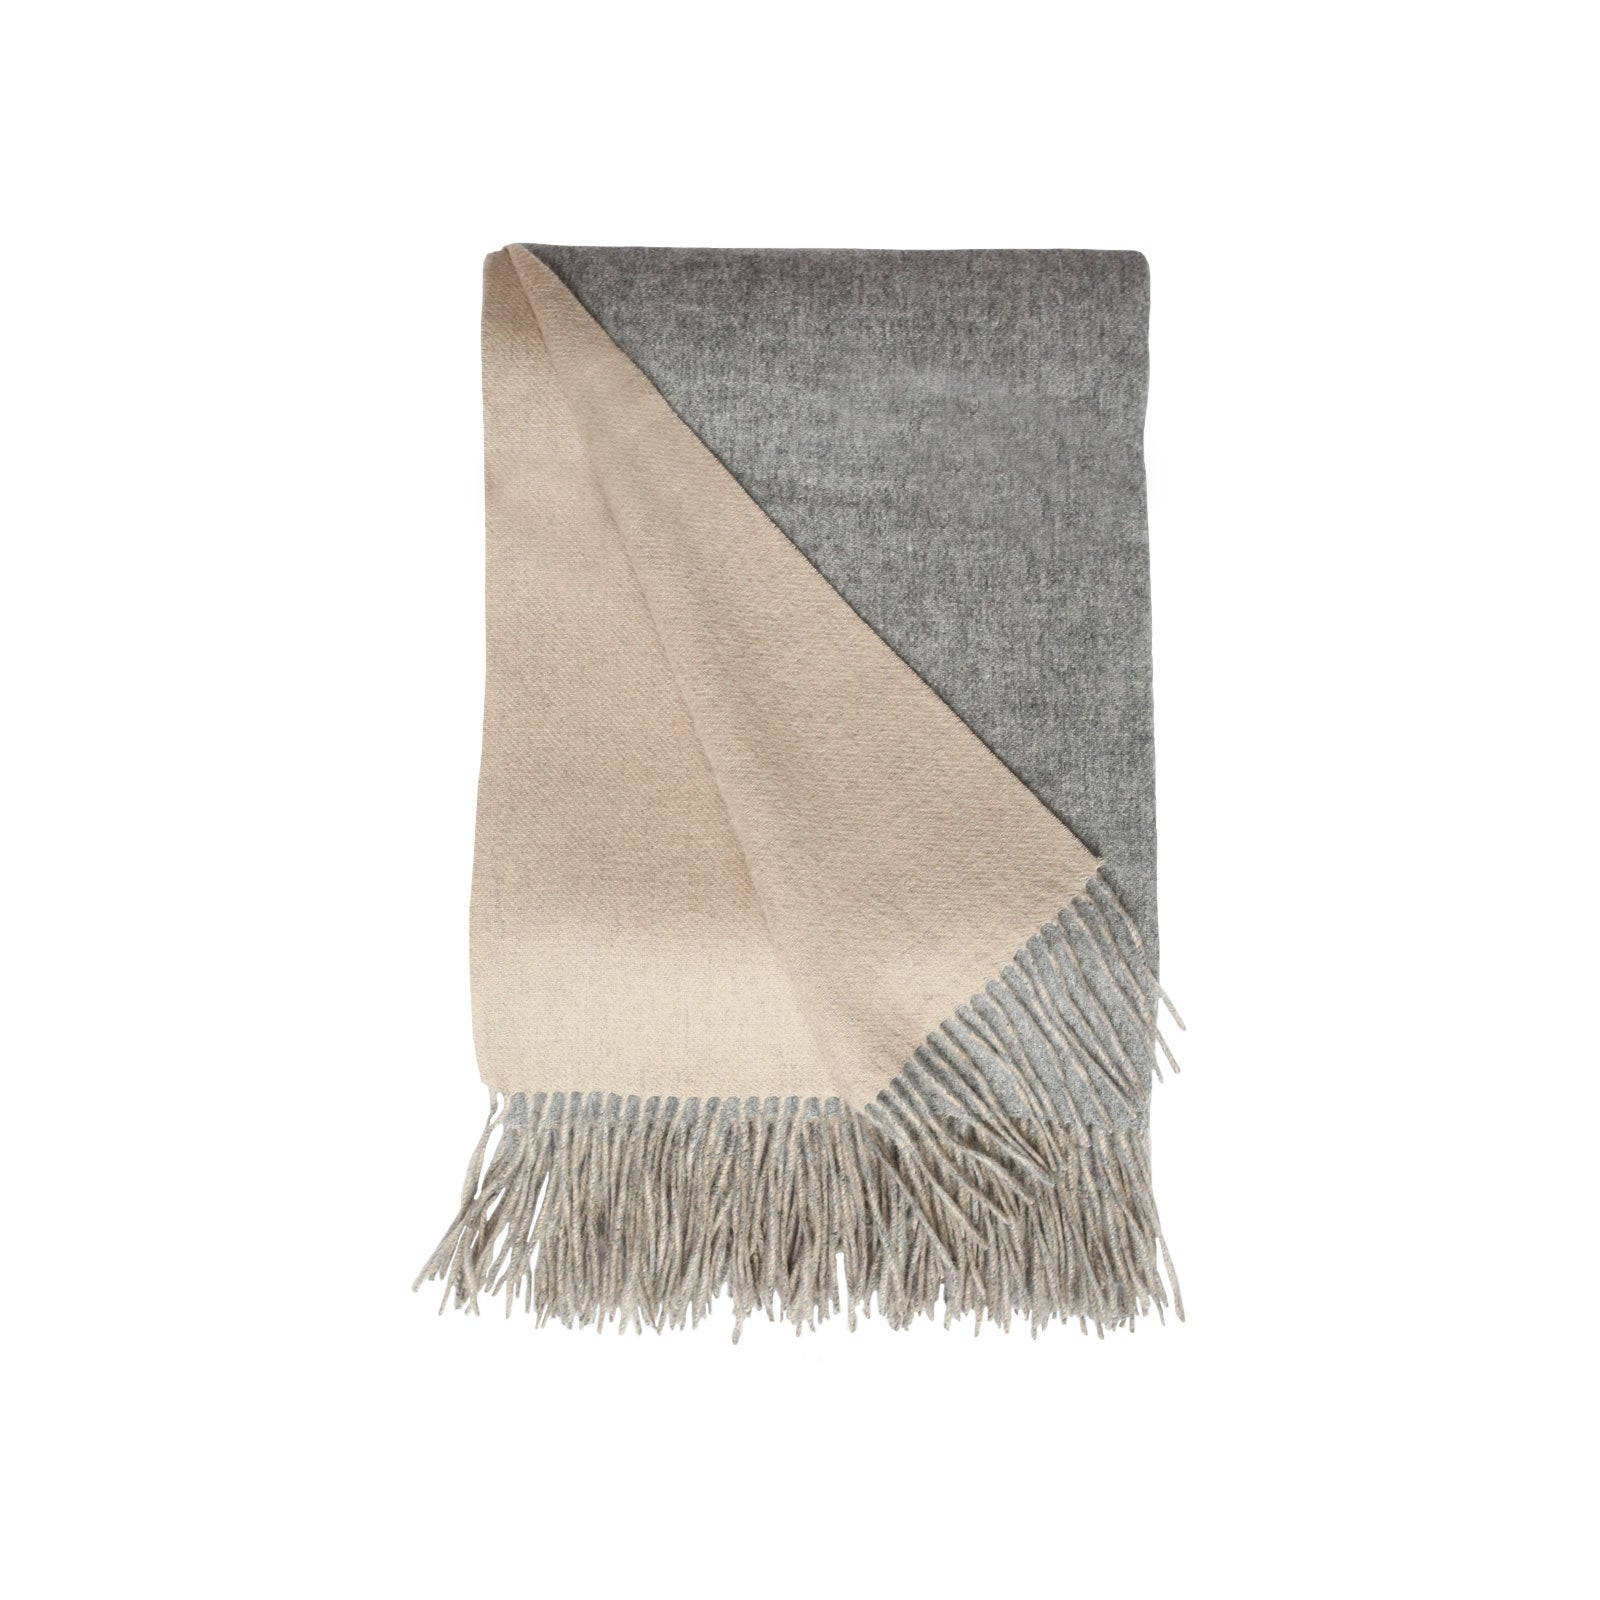 Wool and Cashmere Woven Throw in Grey & Taupe